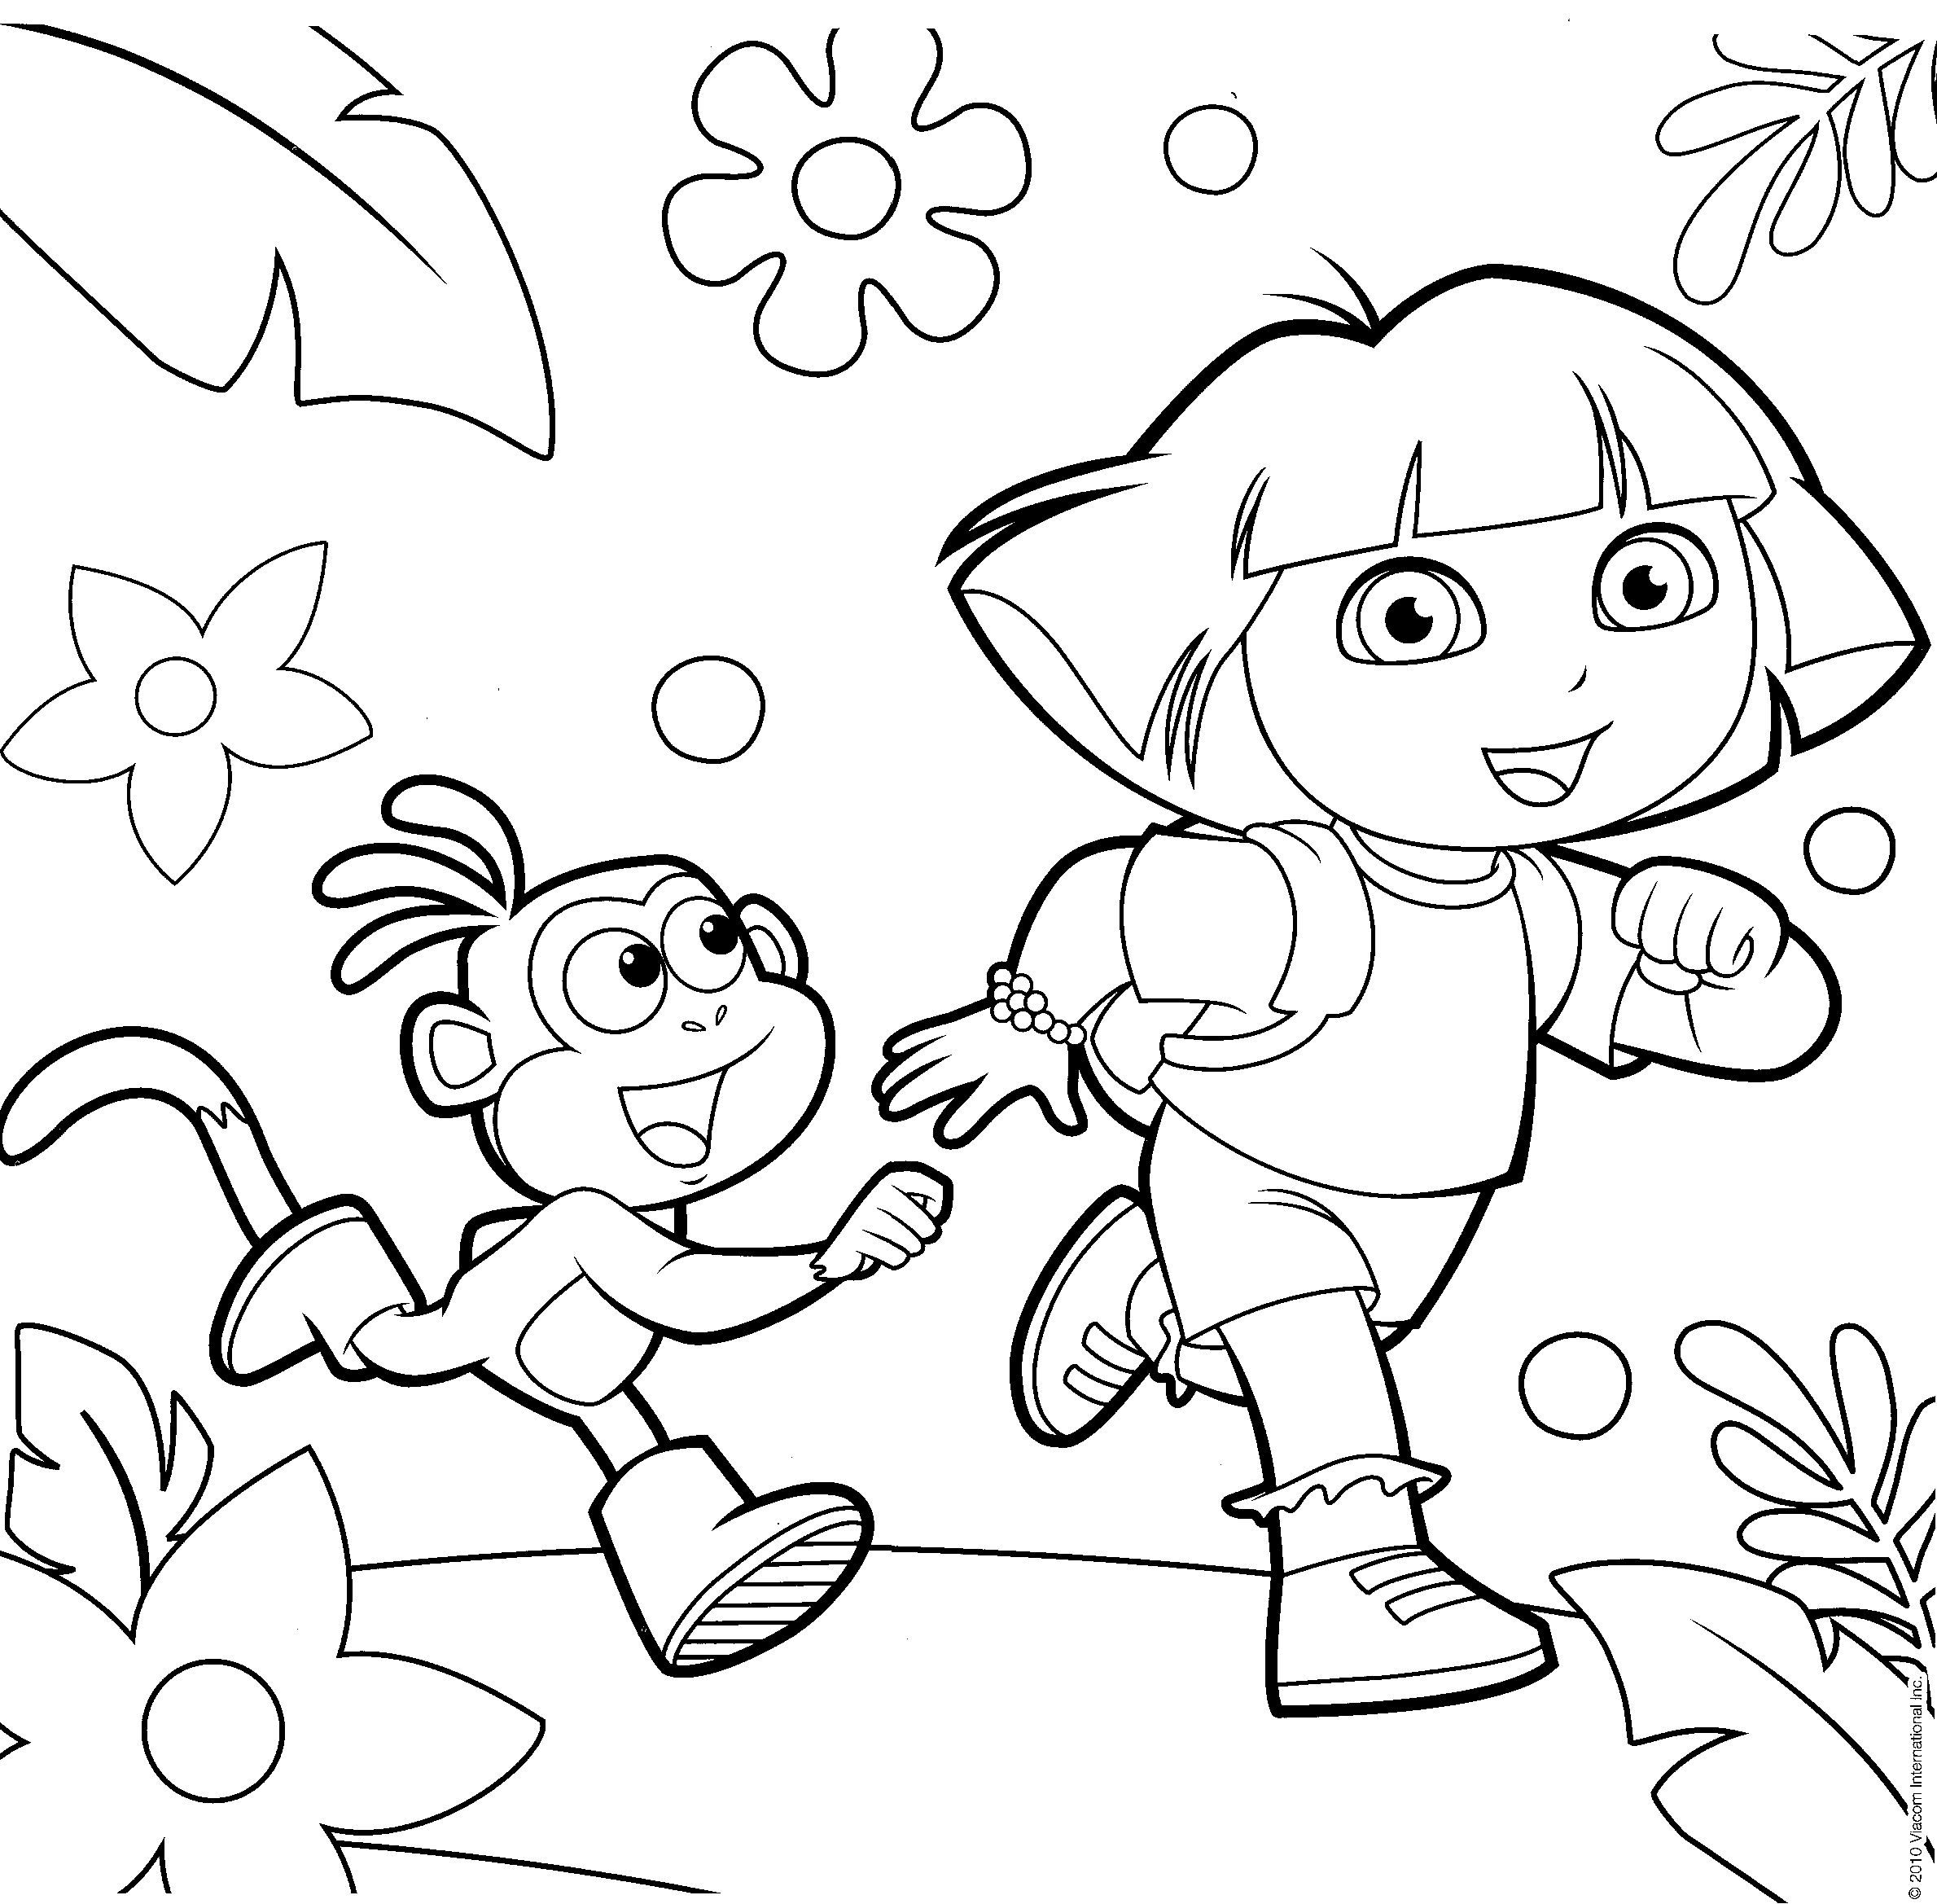 dora coloring pictures dora coloring pages free printables momjunction dora coloring pictures